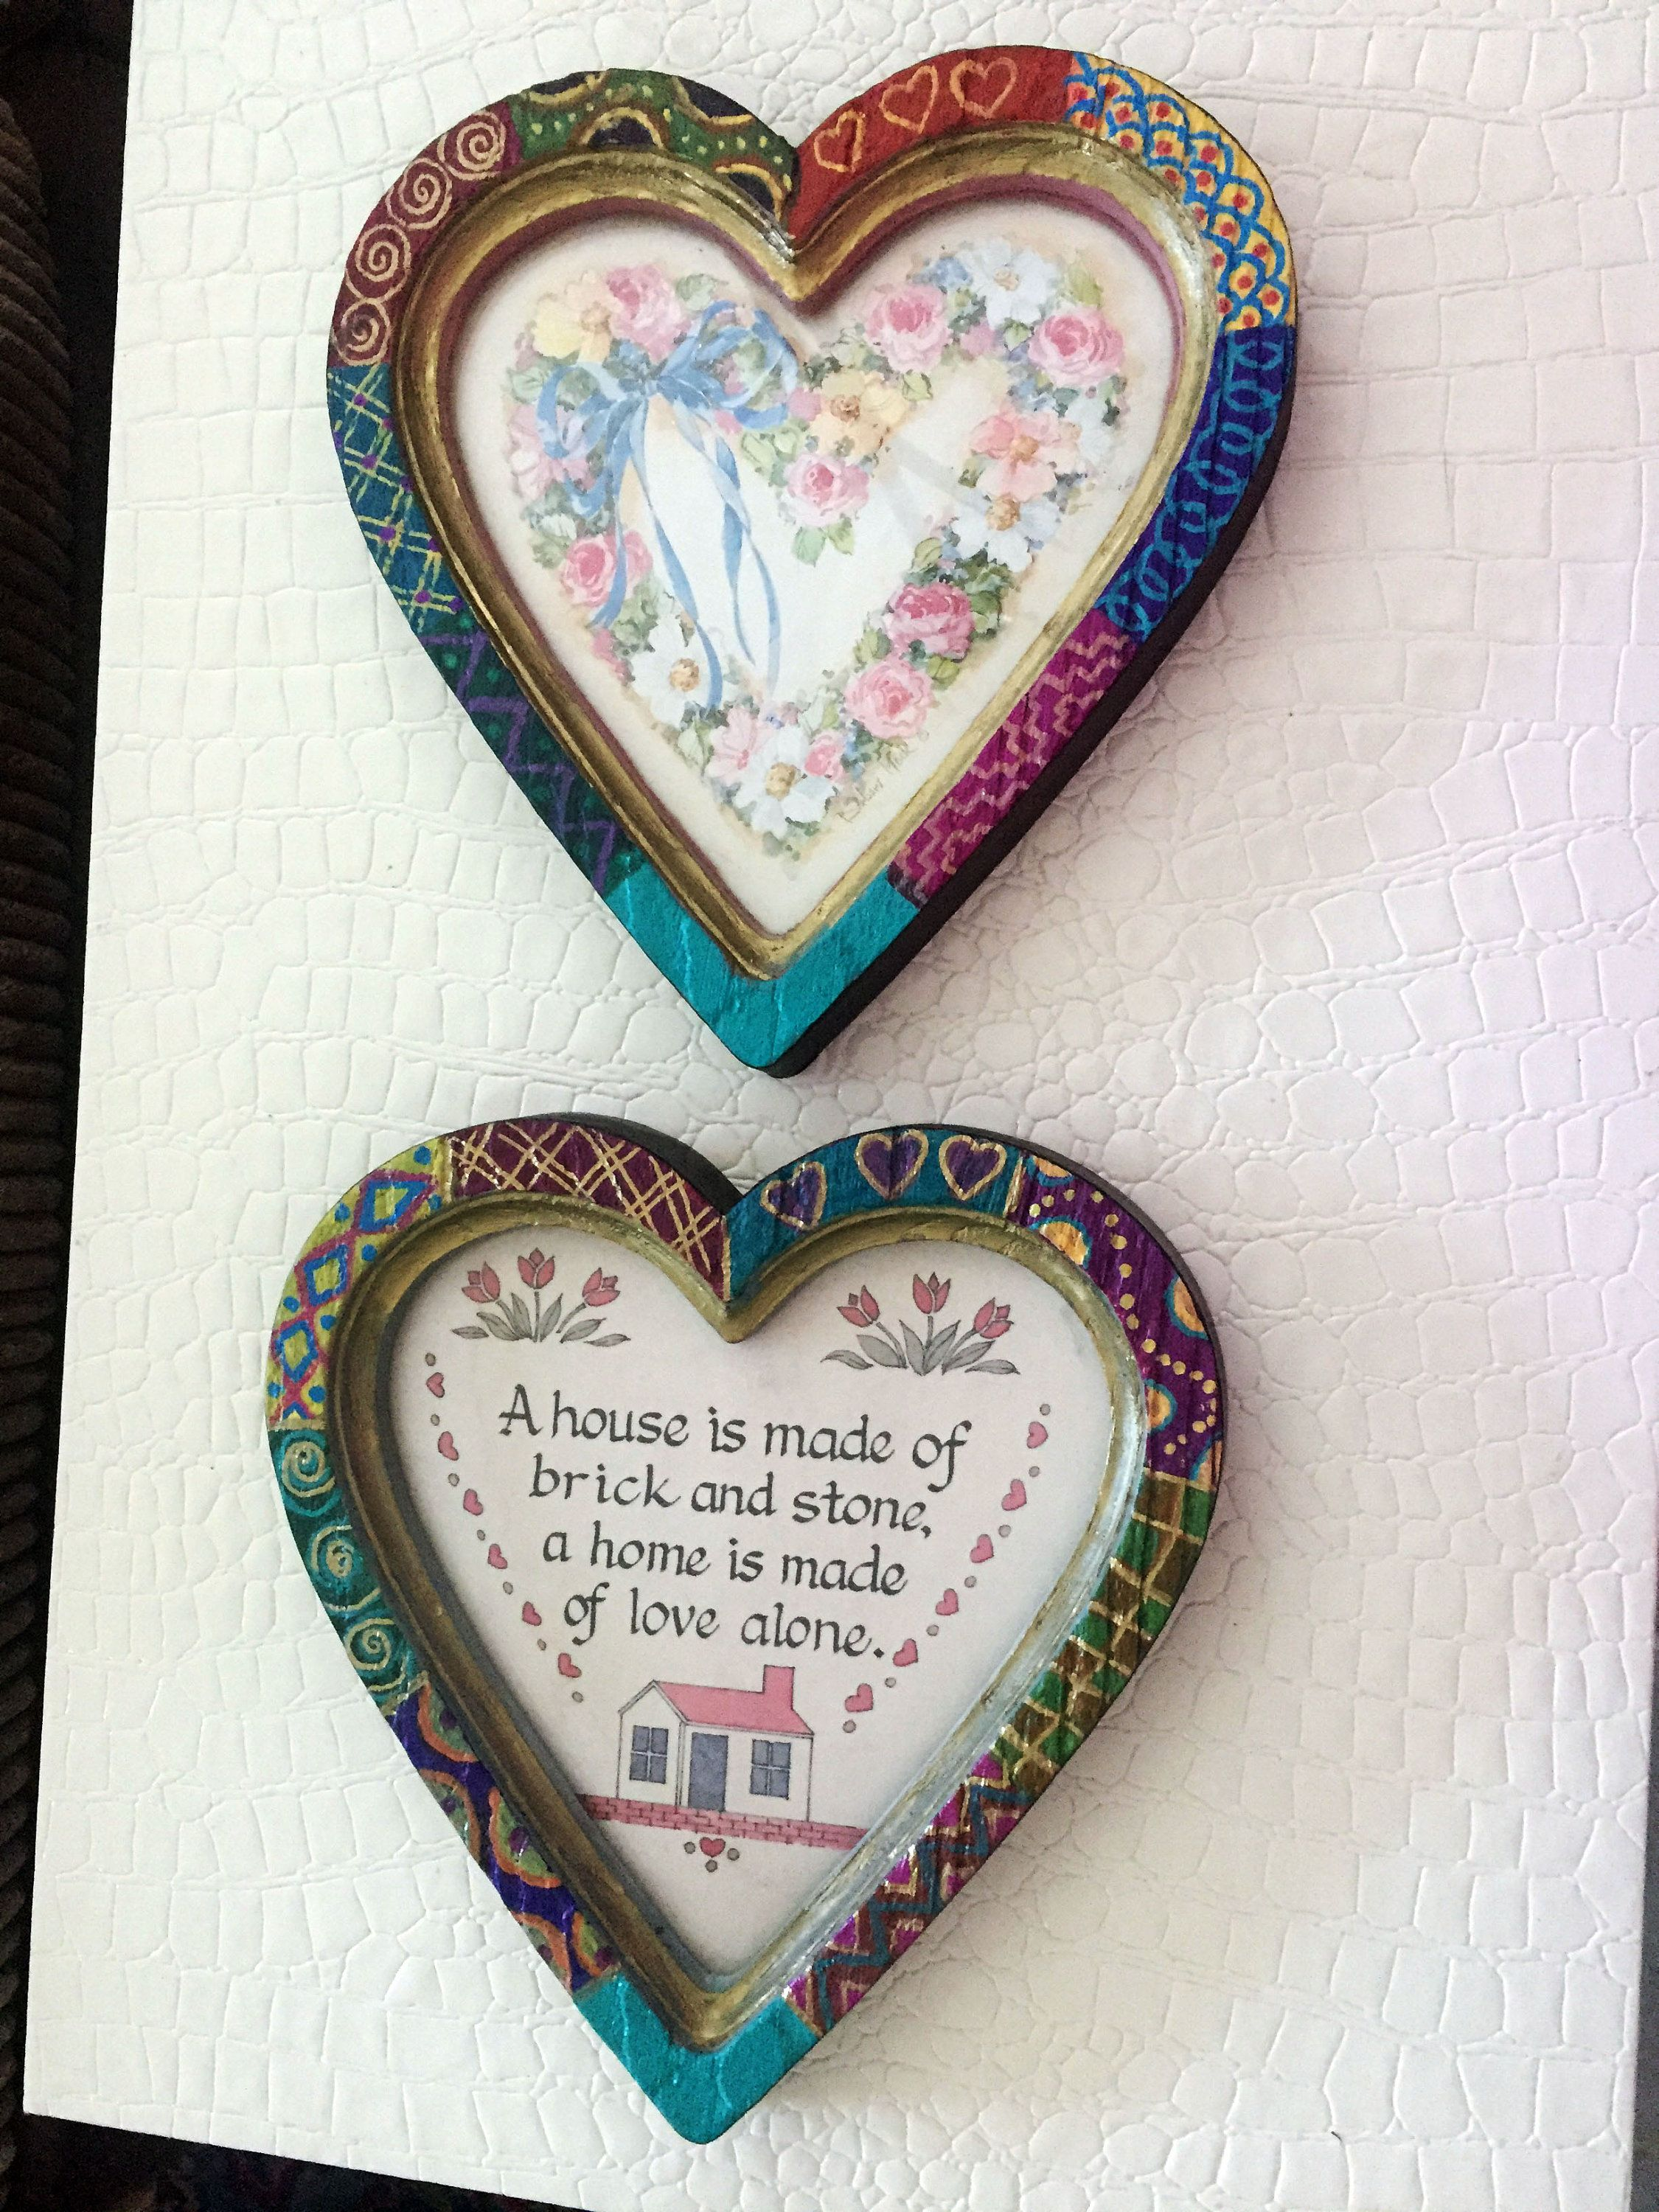 Hand Painted Bohemian Quilt Design Set Of Two Vintage Heart Pictures 8 Wx8 Hx1 D W0239 With Images Bohemian Quilt Hand Painted Vintage Heart